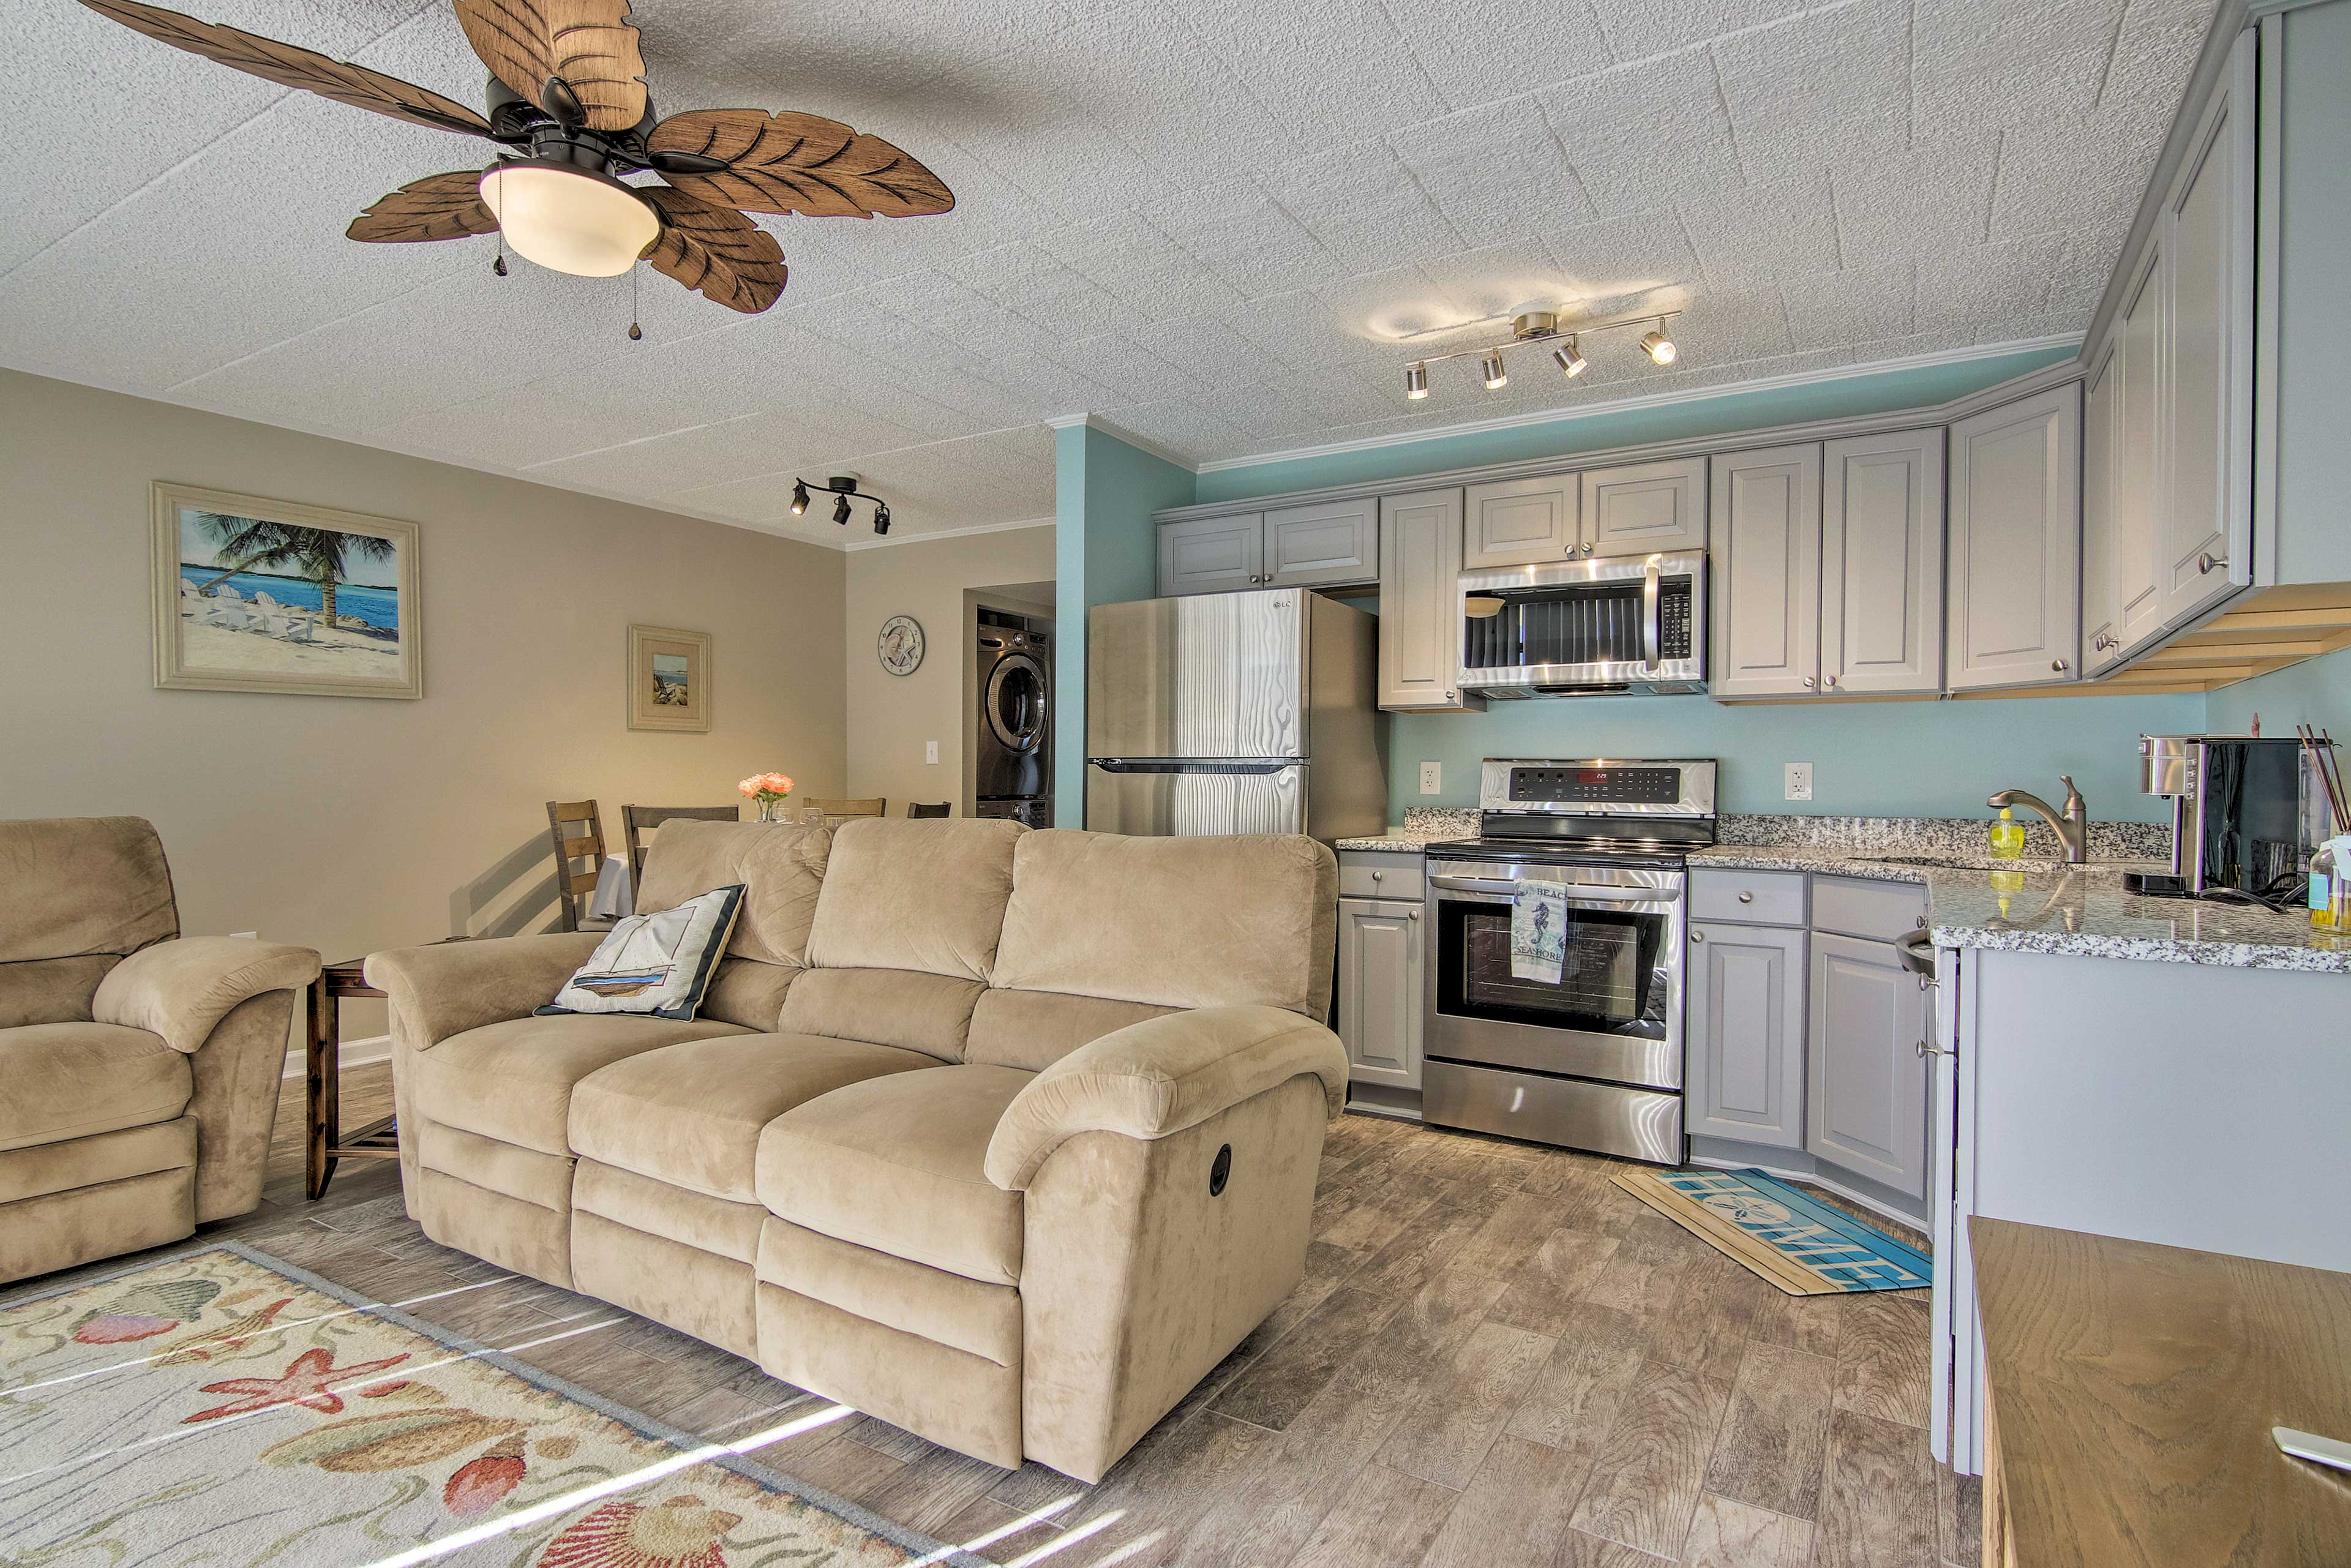 The open-concept layout is home to both the living room and kitchen.